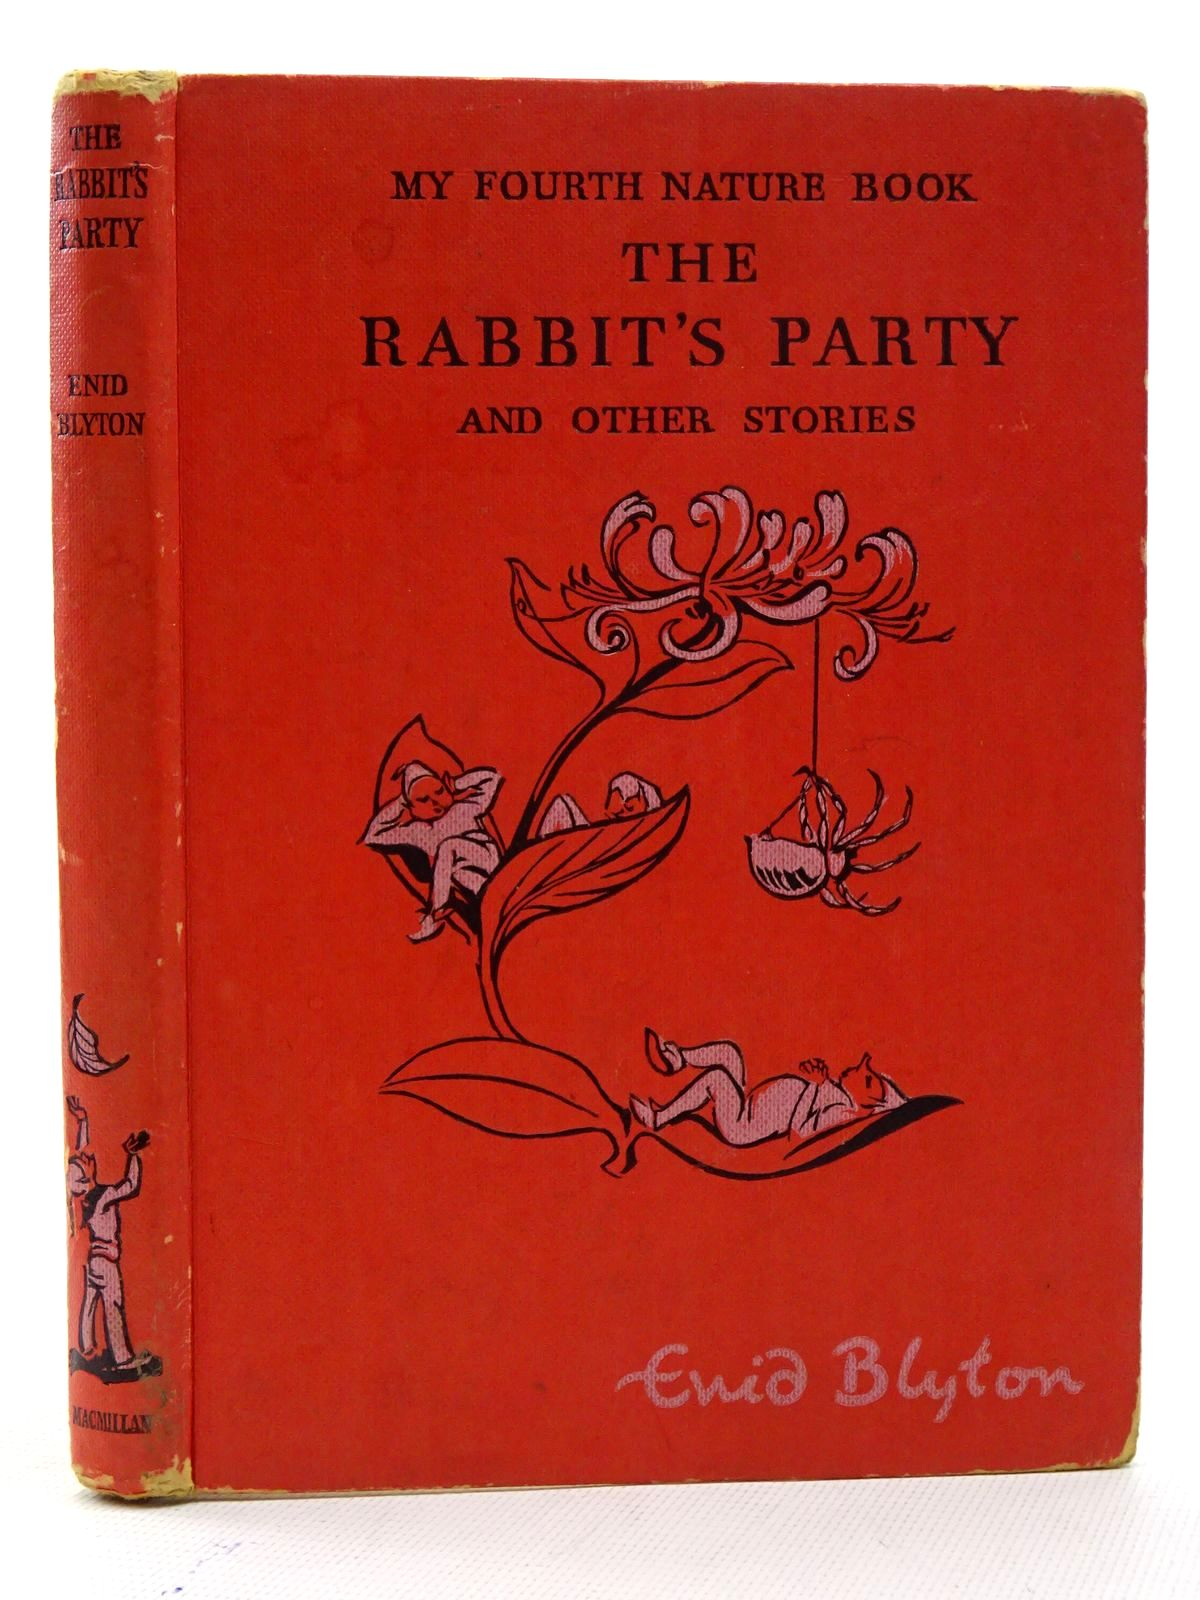 Photo of THE RABBIT'S PARTY AND OTHER STORIES - MY FOURTH NATURE BOOK written by Blyton, Enid illustrated by Soper, Eileen published by Macmillan & Co. Ltd. (STOCK CODE: 1610622)  for sale by Stella & Rose's Books